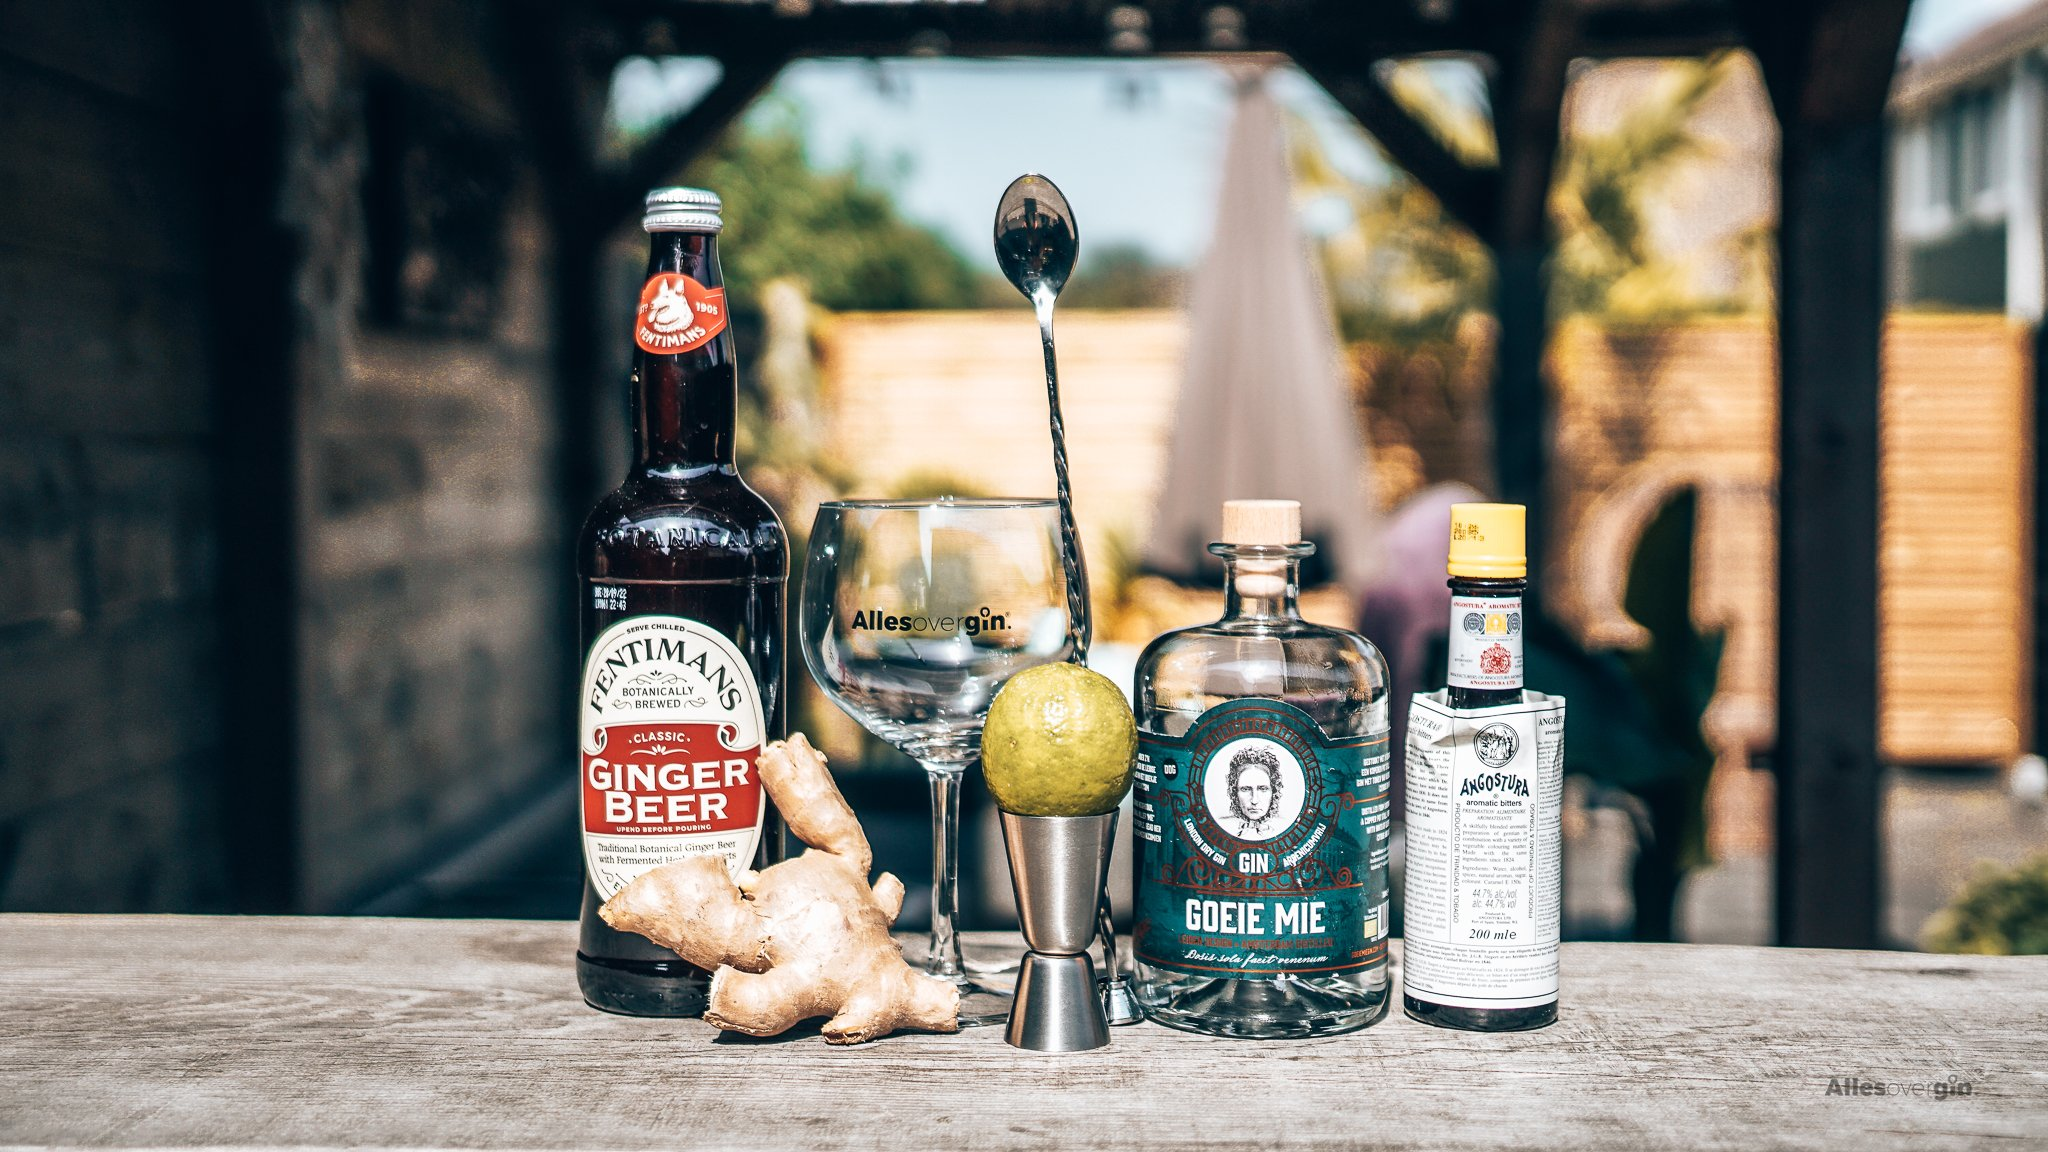 Recept gin cocktail, Mie Gin Mule, Goeie Mie Gin, Alles over gin.